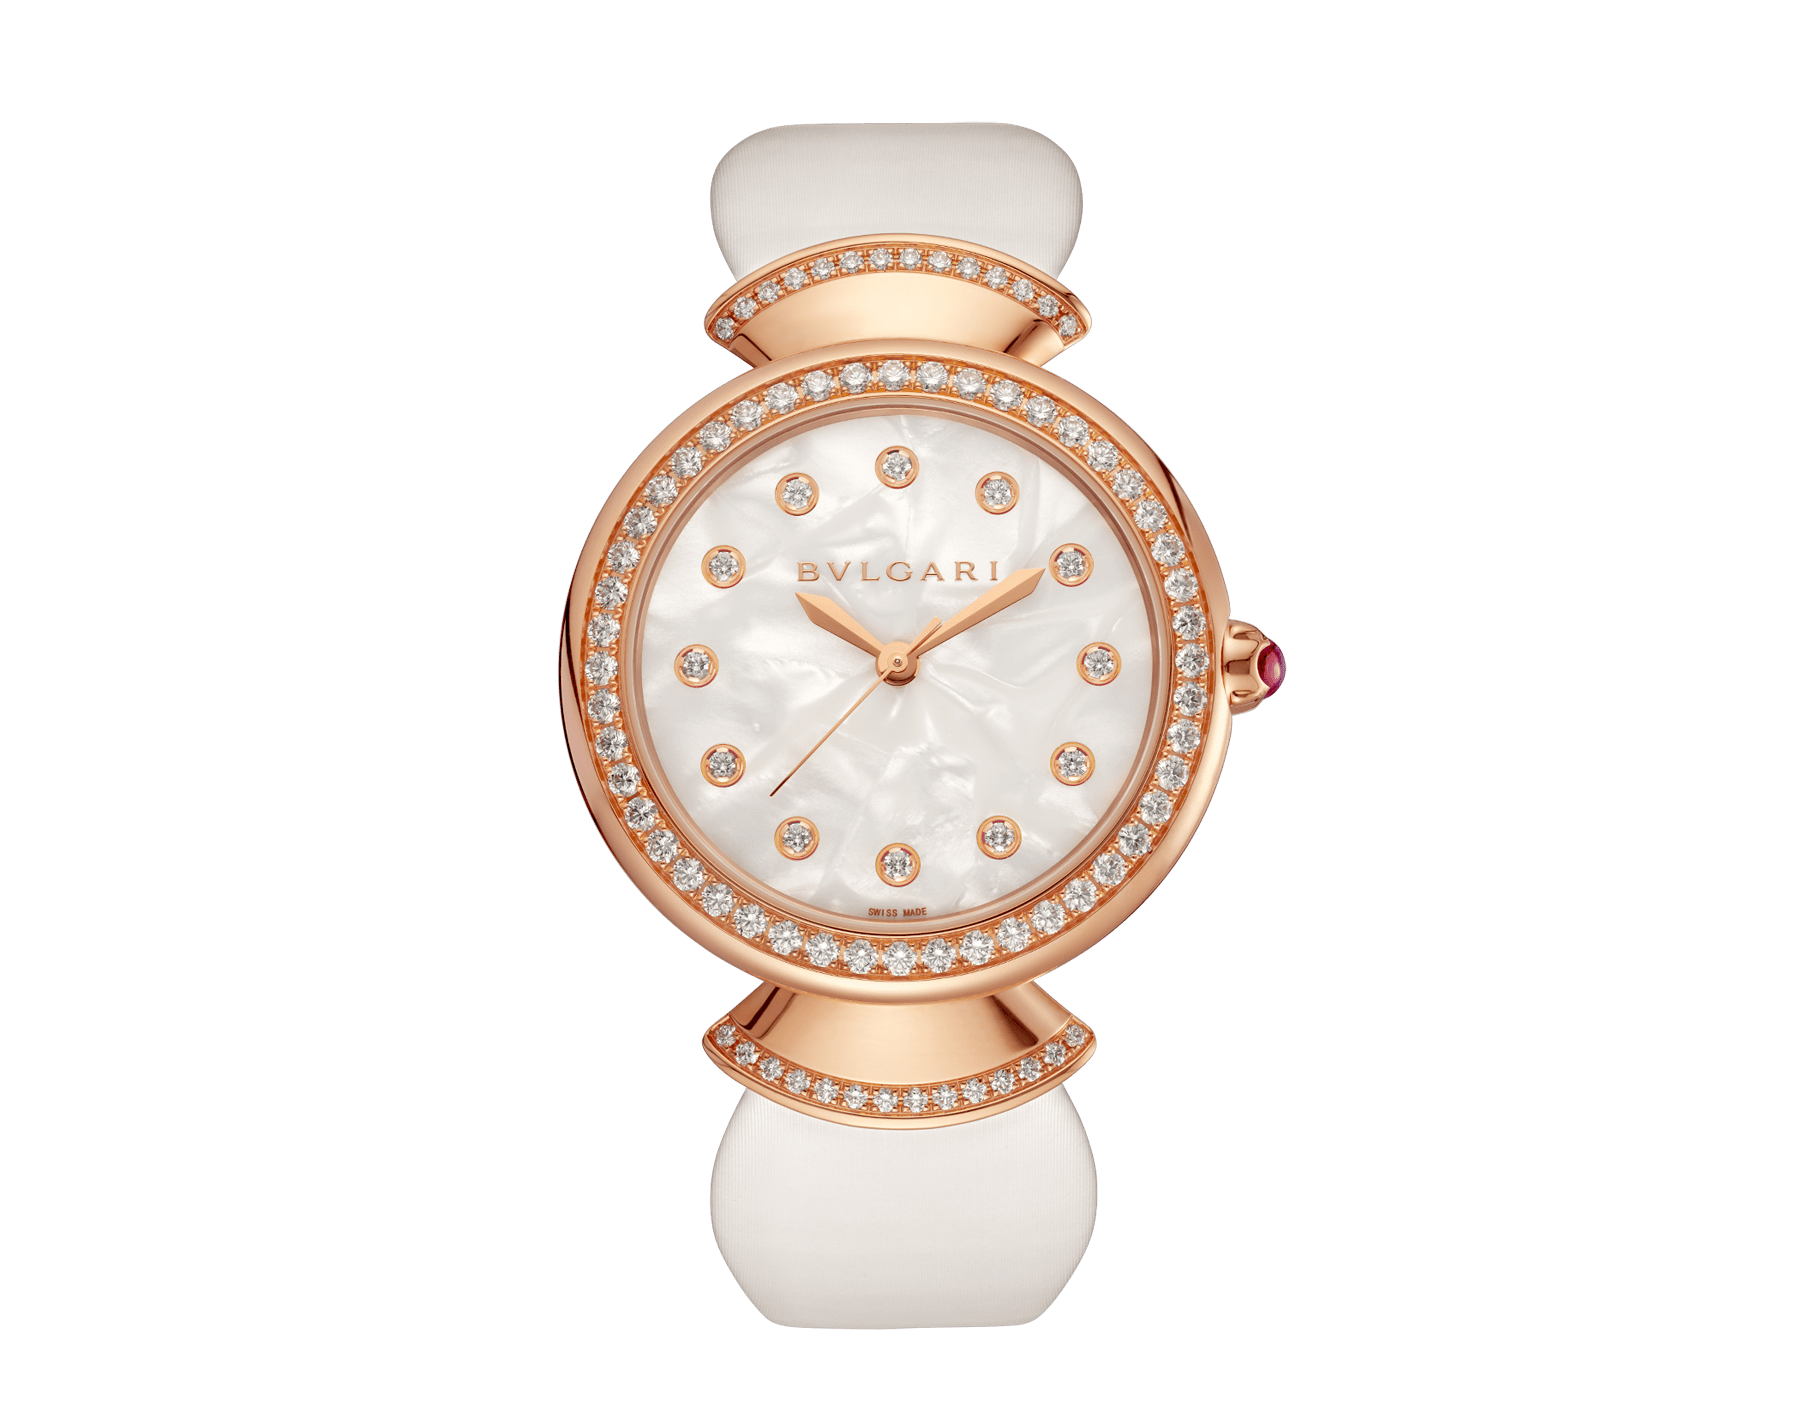 DIVAS' DREAM watch with 18 kt rose gold case set with brilliant-cut diamonds, acetate dial, diamond indexes and white satin bracelet 102575 image 1